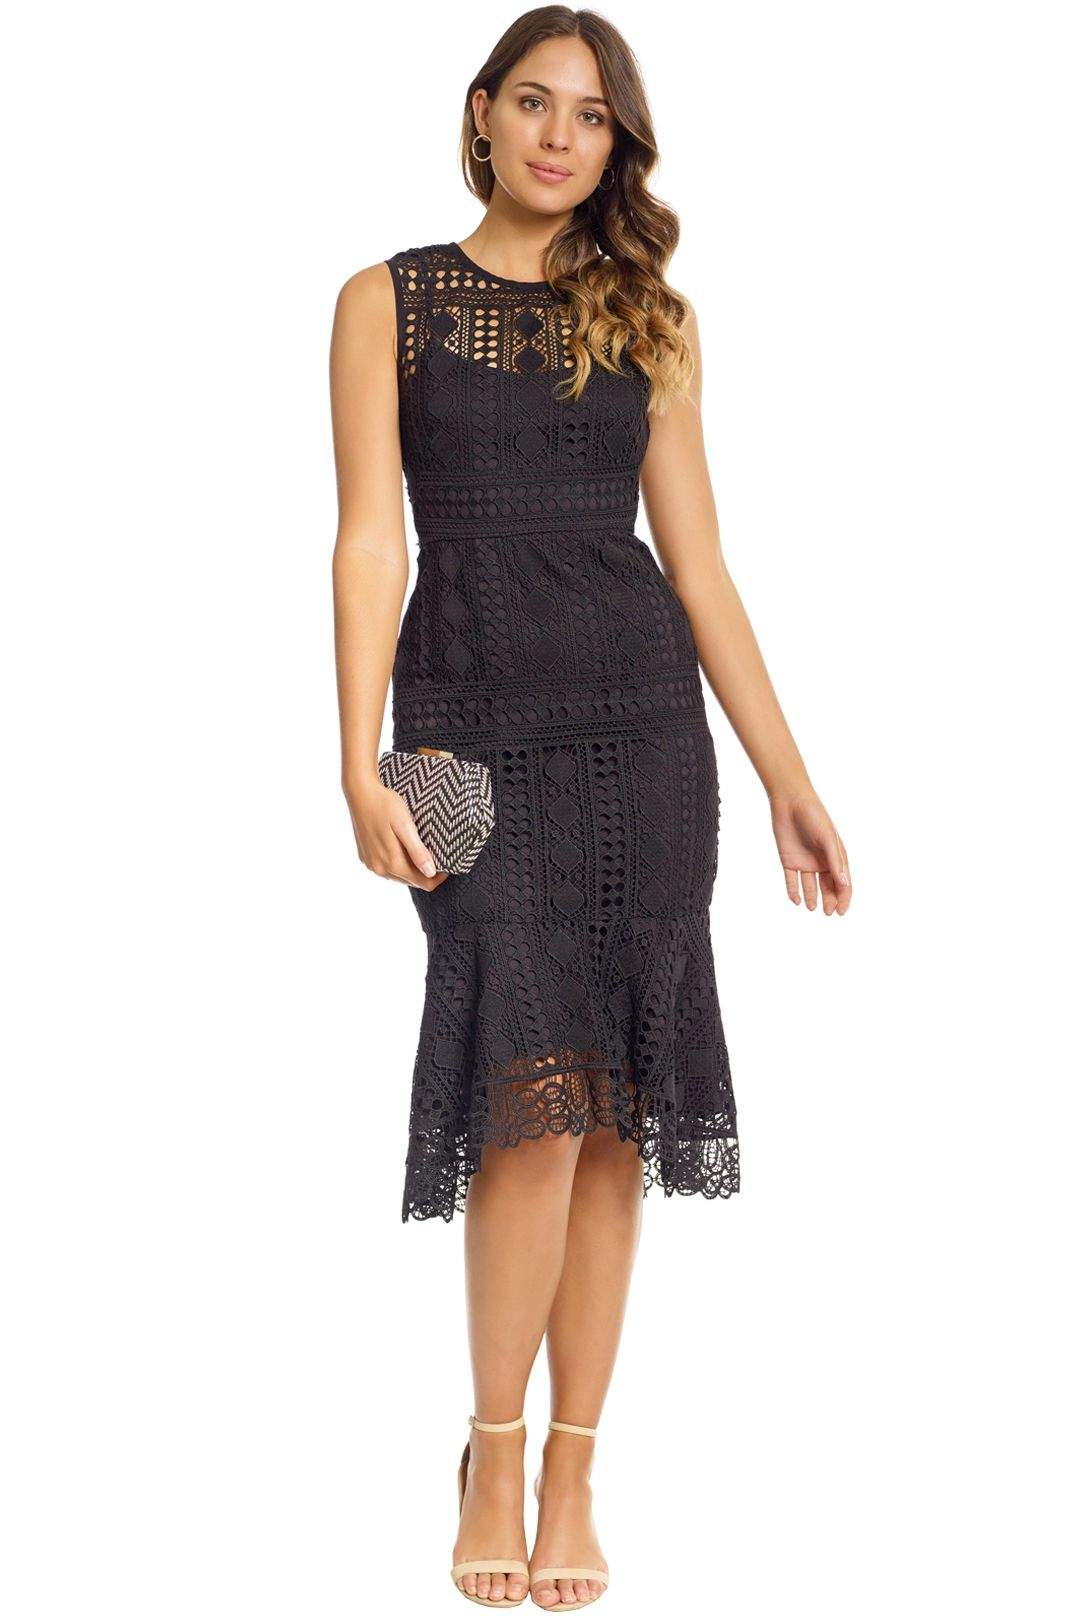 Shoshanna - Noe Dress - Front - Black